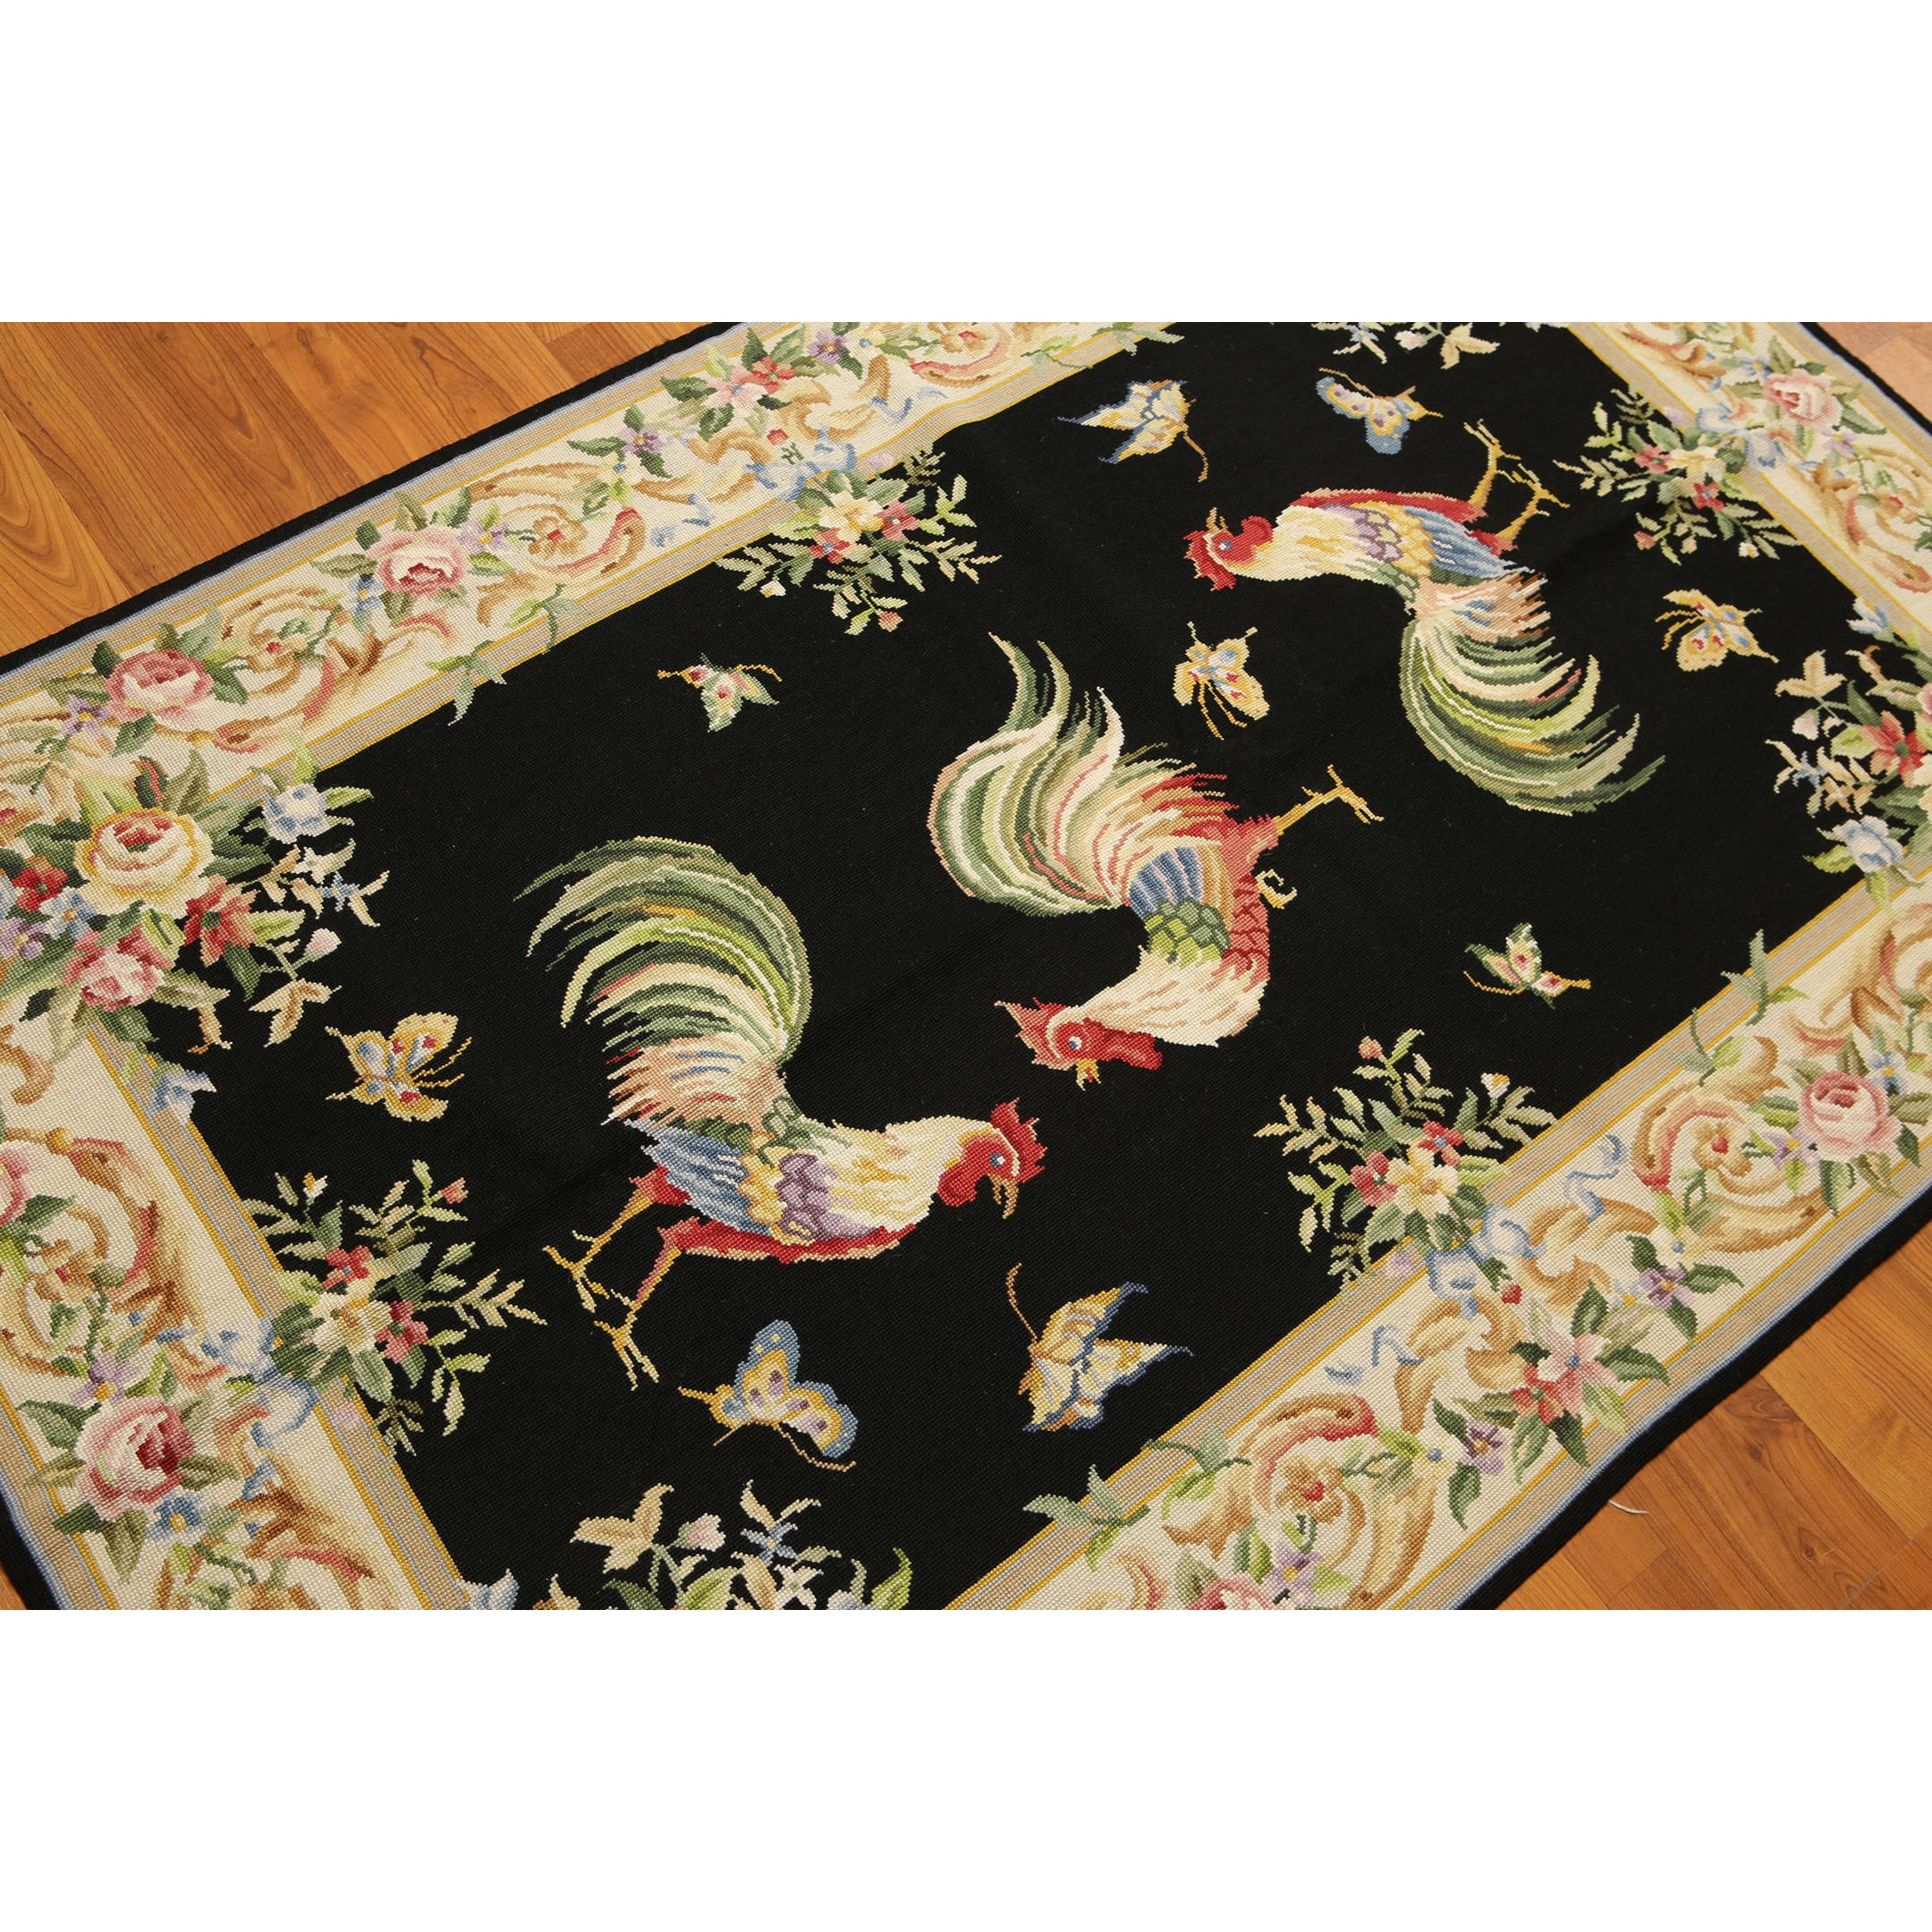 Rustic Farmhouse Rooster Country Needlepoint Area Rug 4 X6